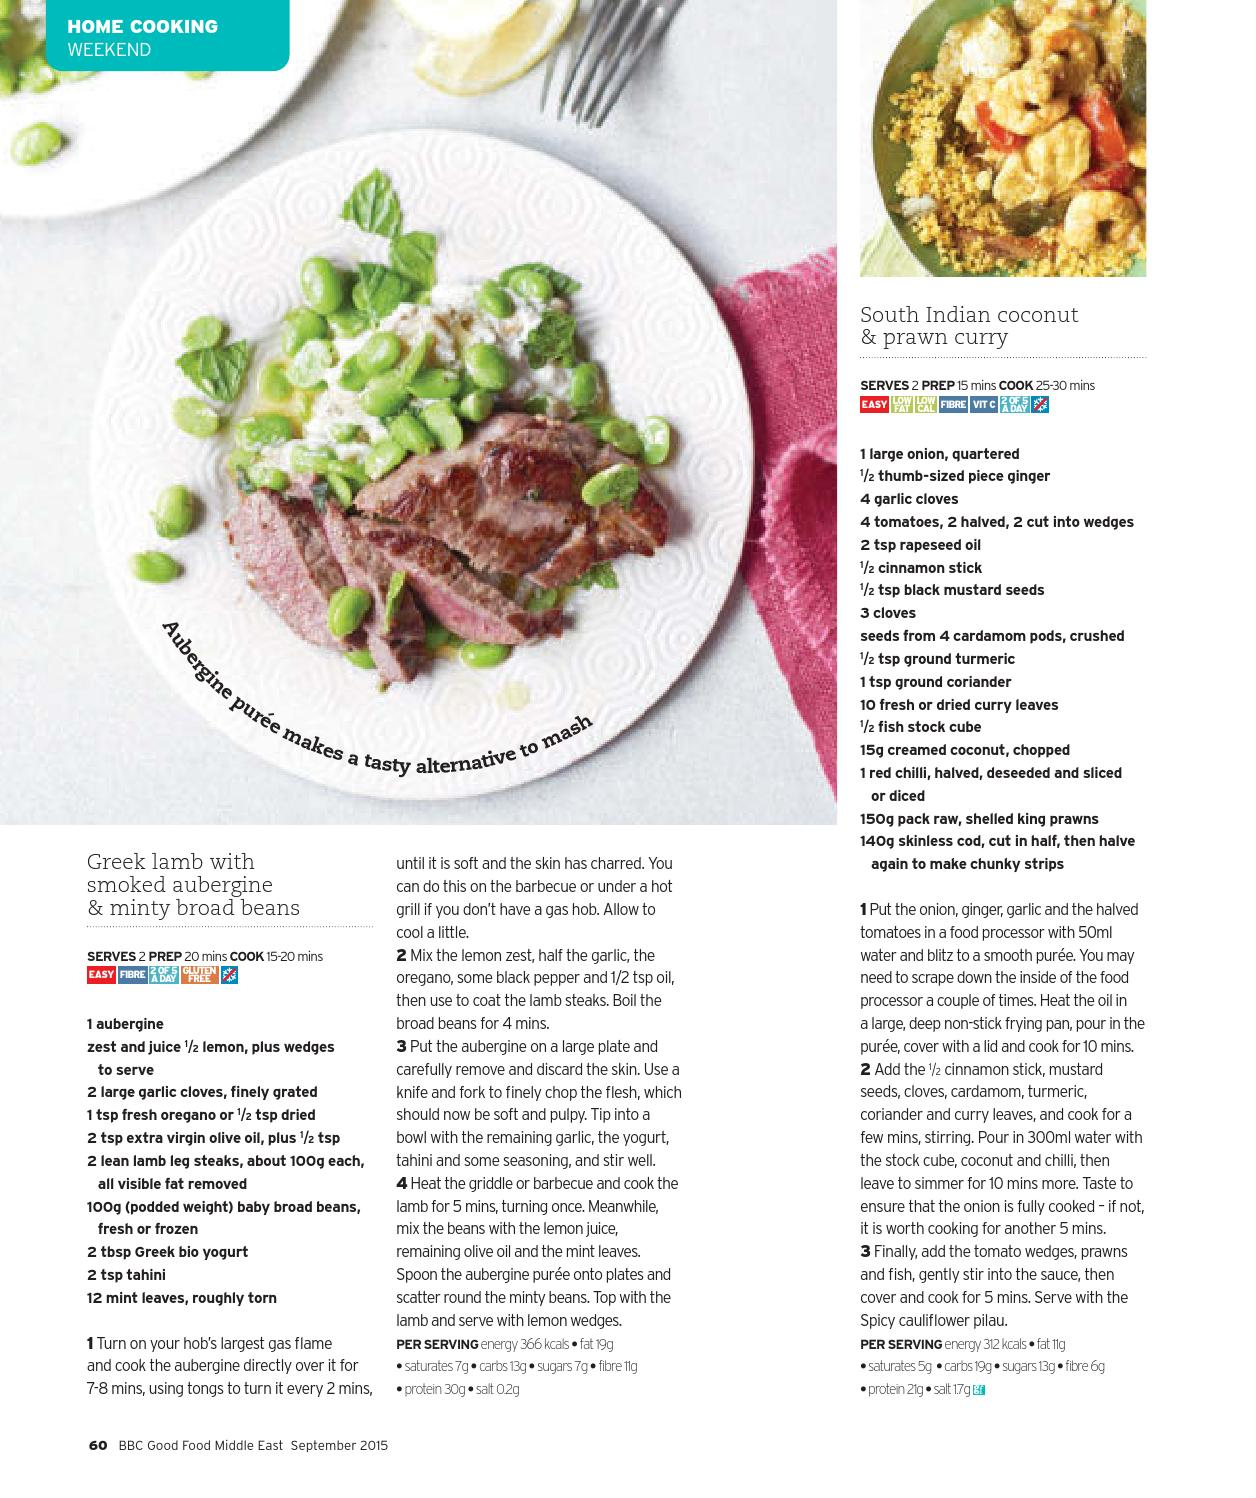 Bbc good food broad bean recipes broad bean courgette salad recipe bbc good food recipe paella easy paella recipe bbc good foodeasiest forumfinder Choice Image